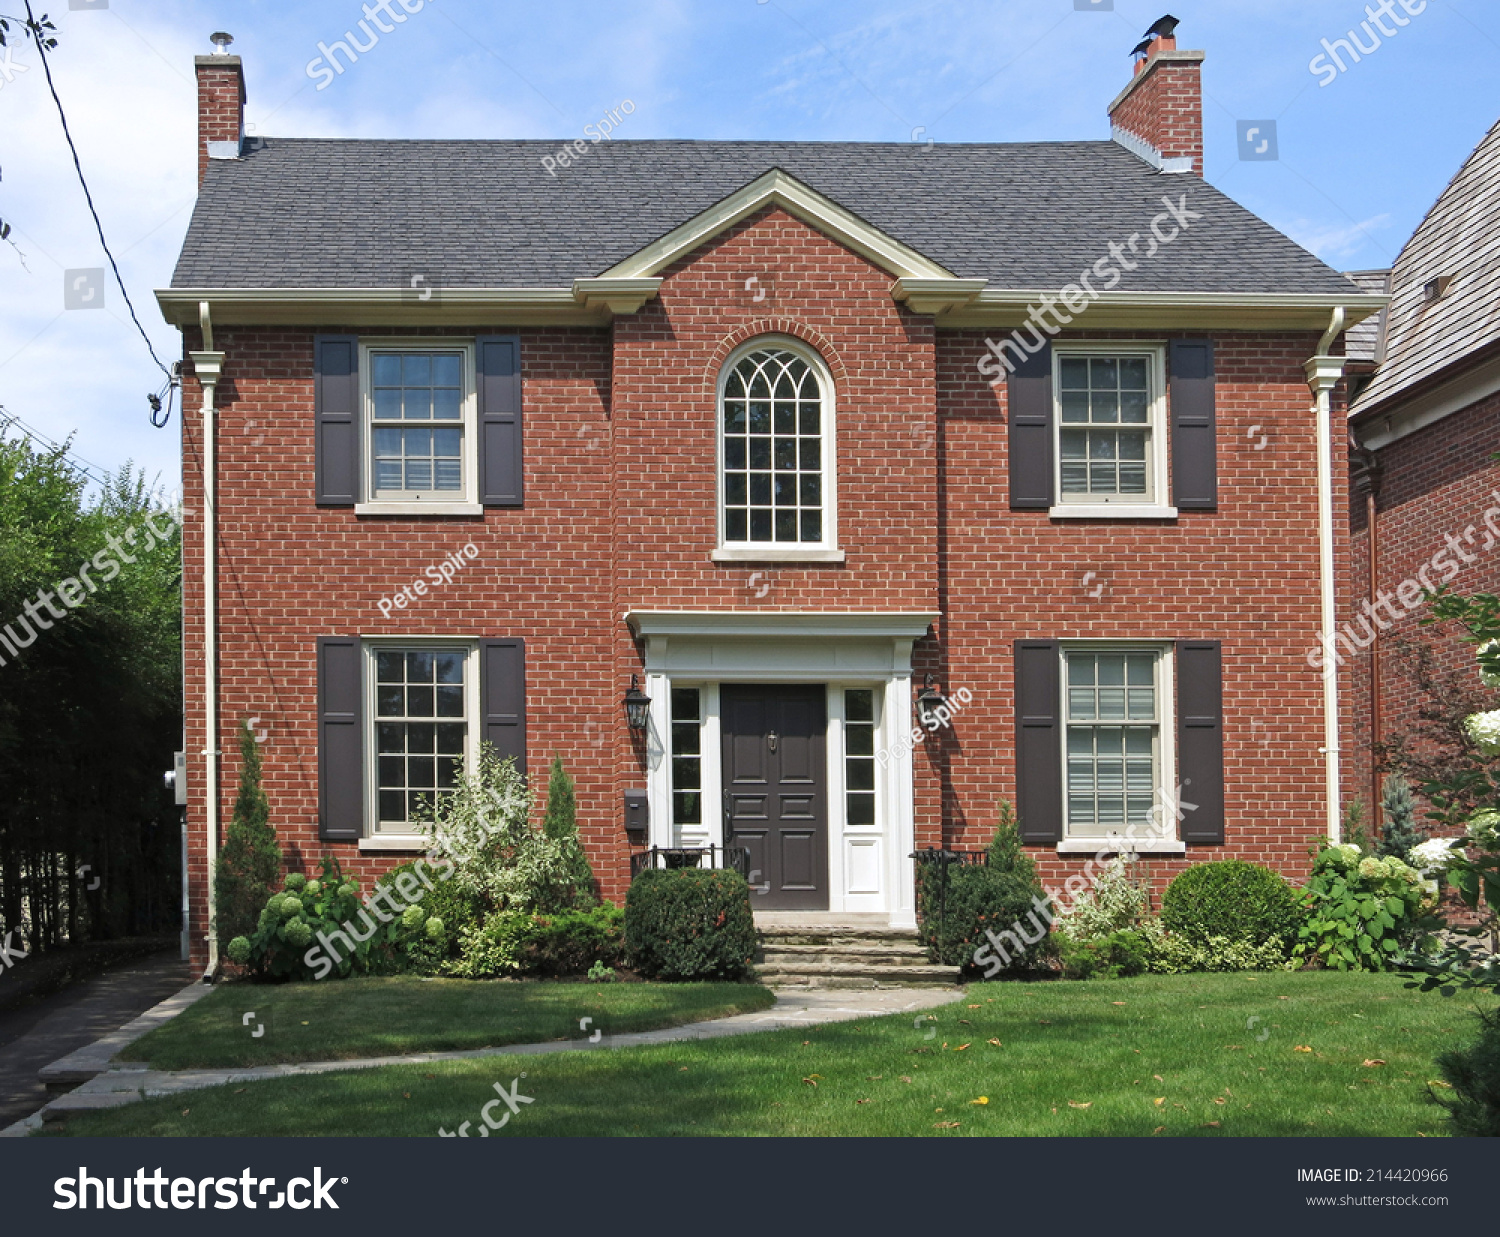 Traditional two story brick house shutters stock photo for Brick traditional homes